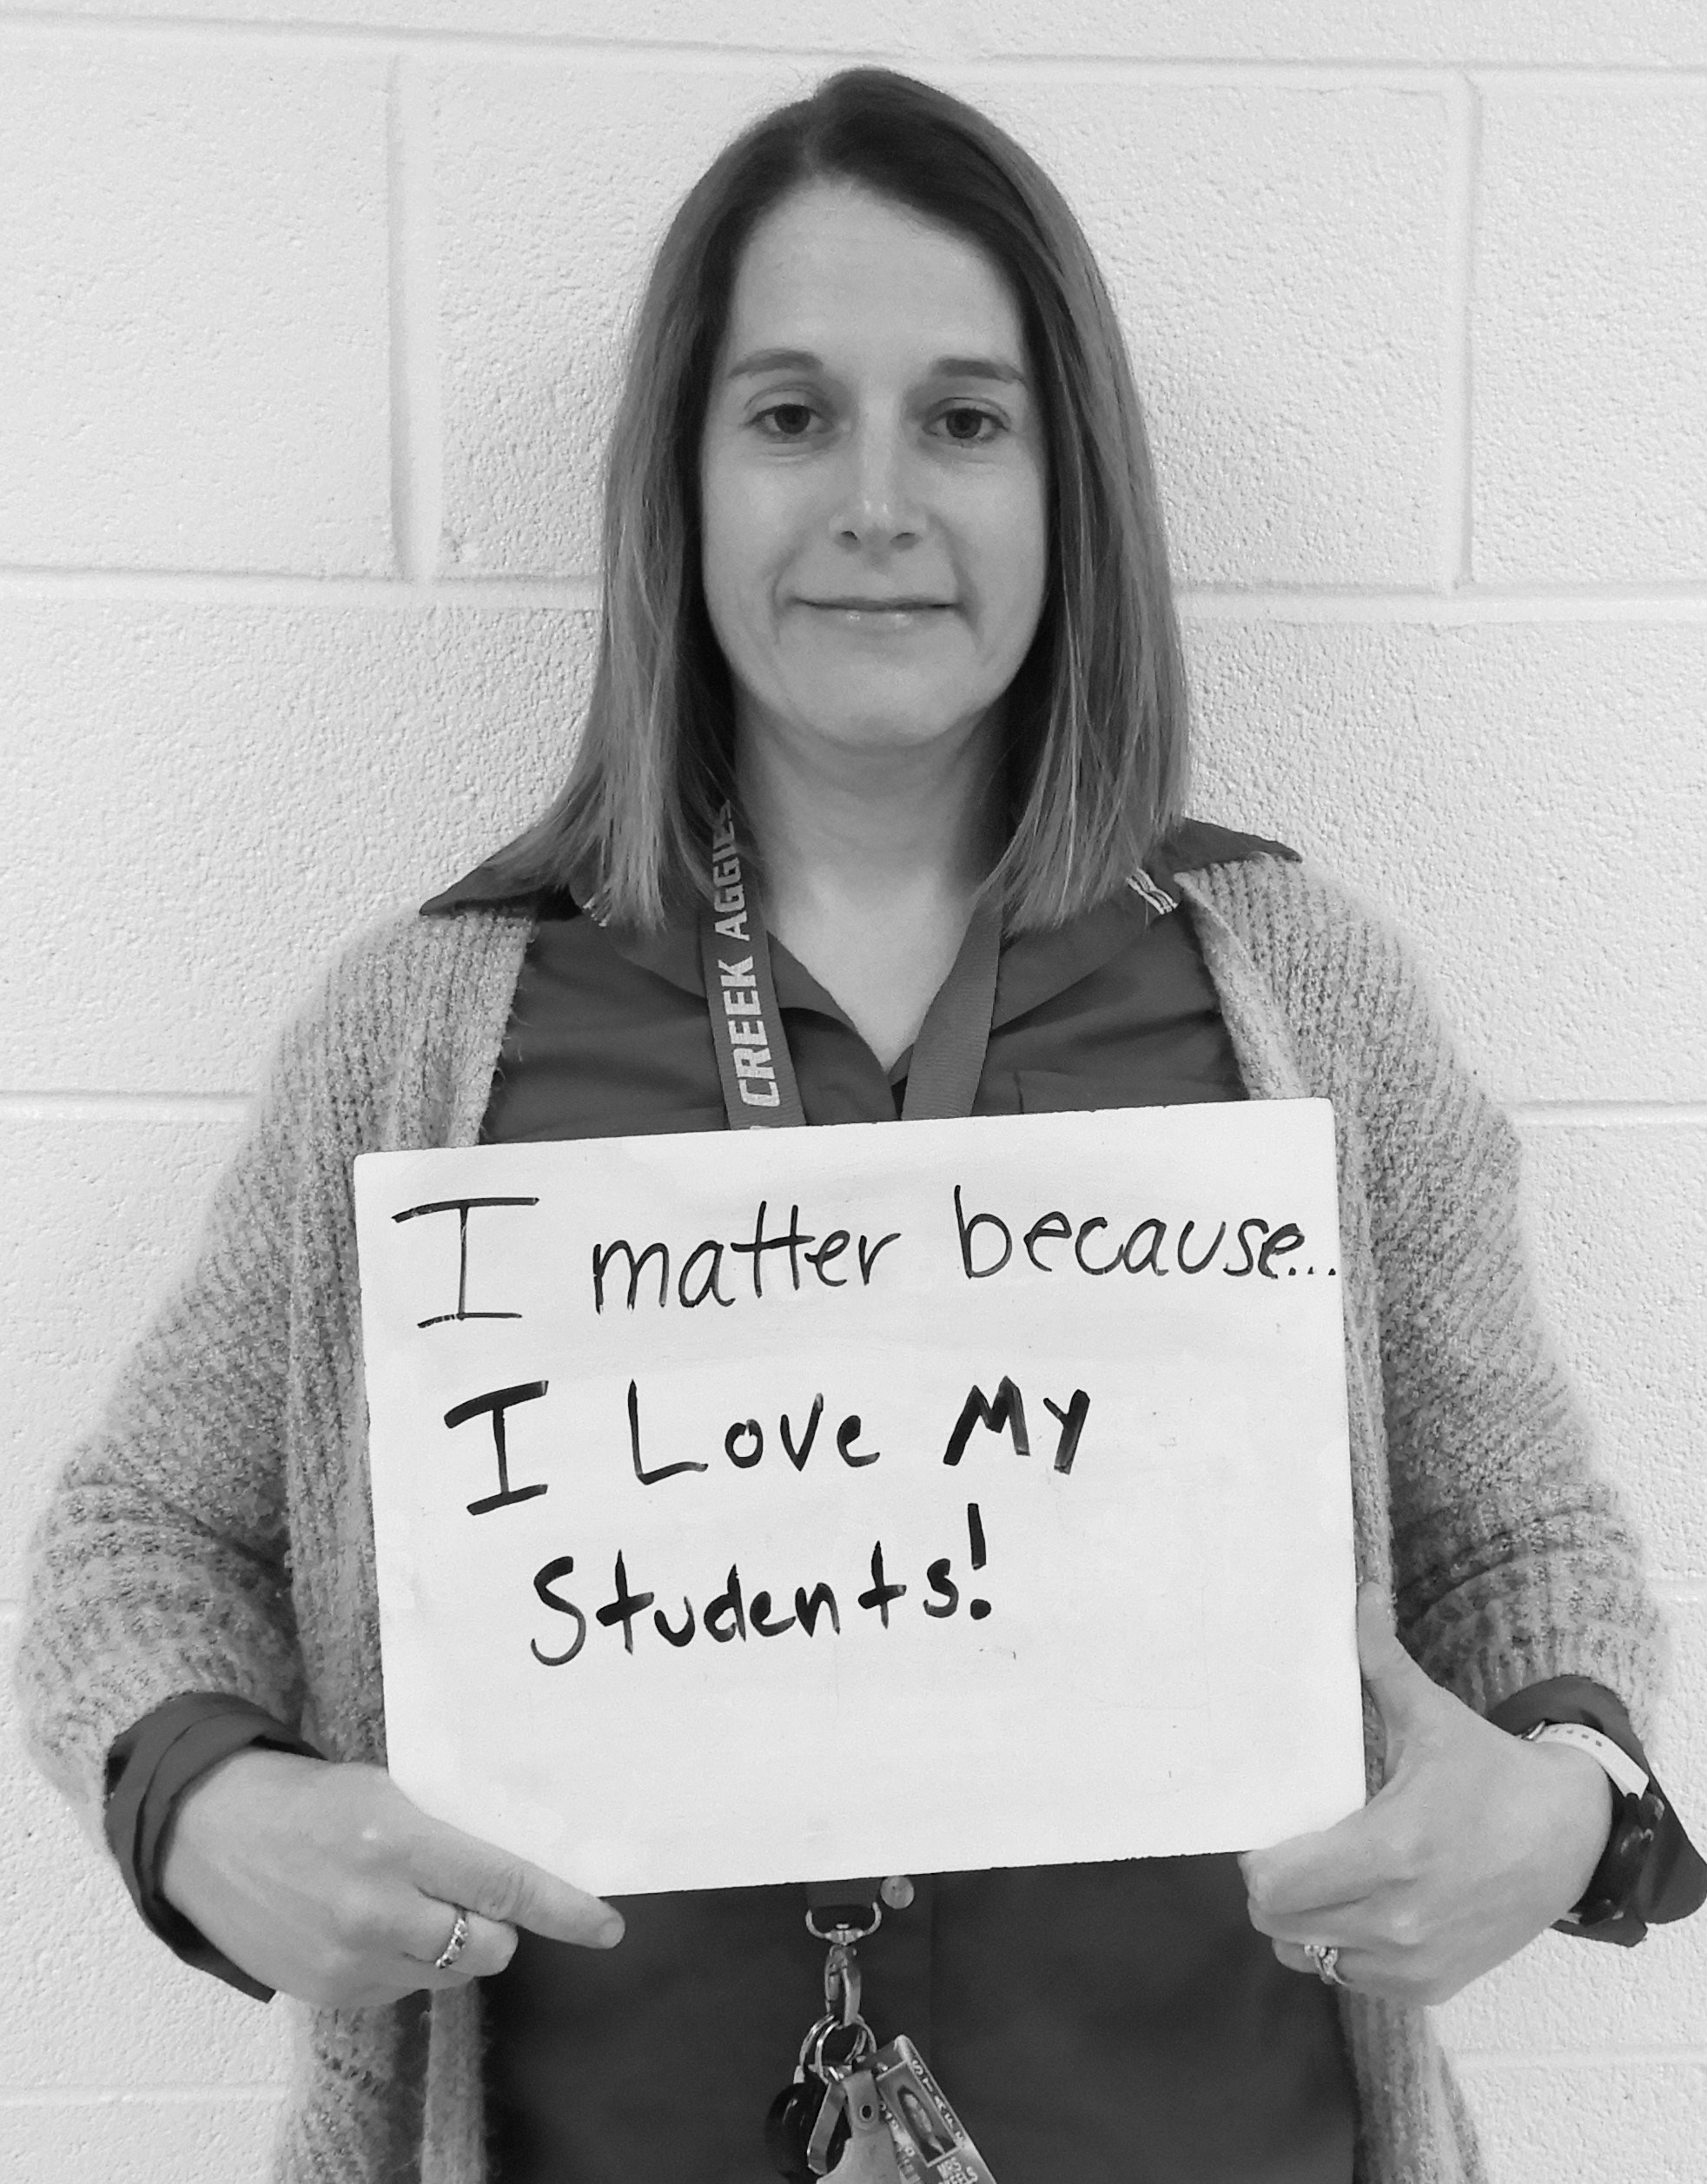 I matter because...I love my students!